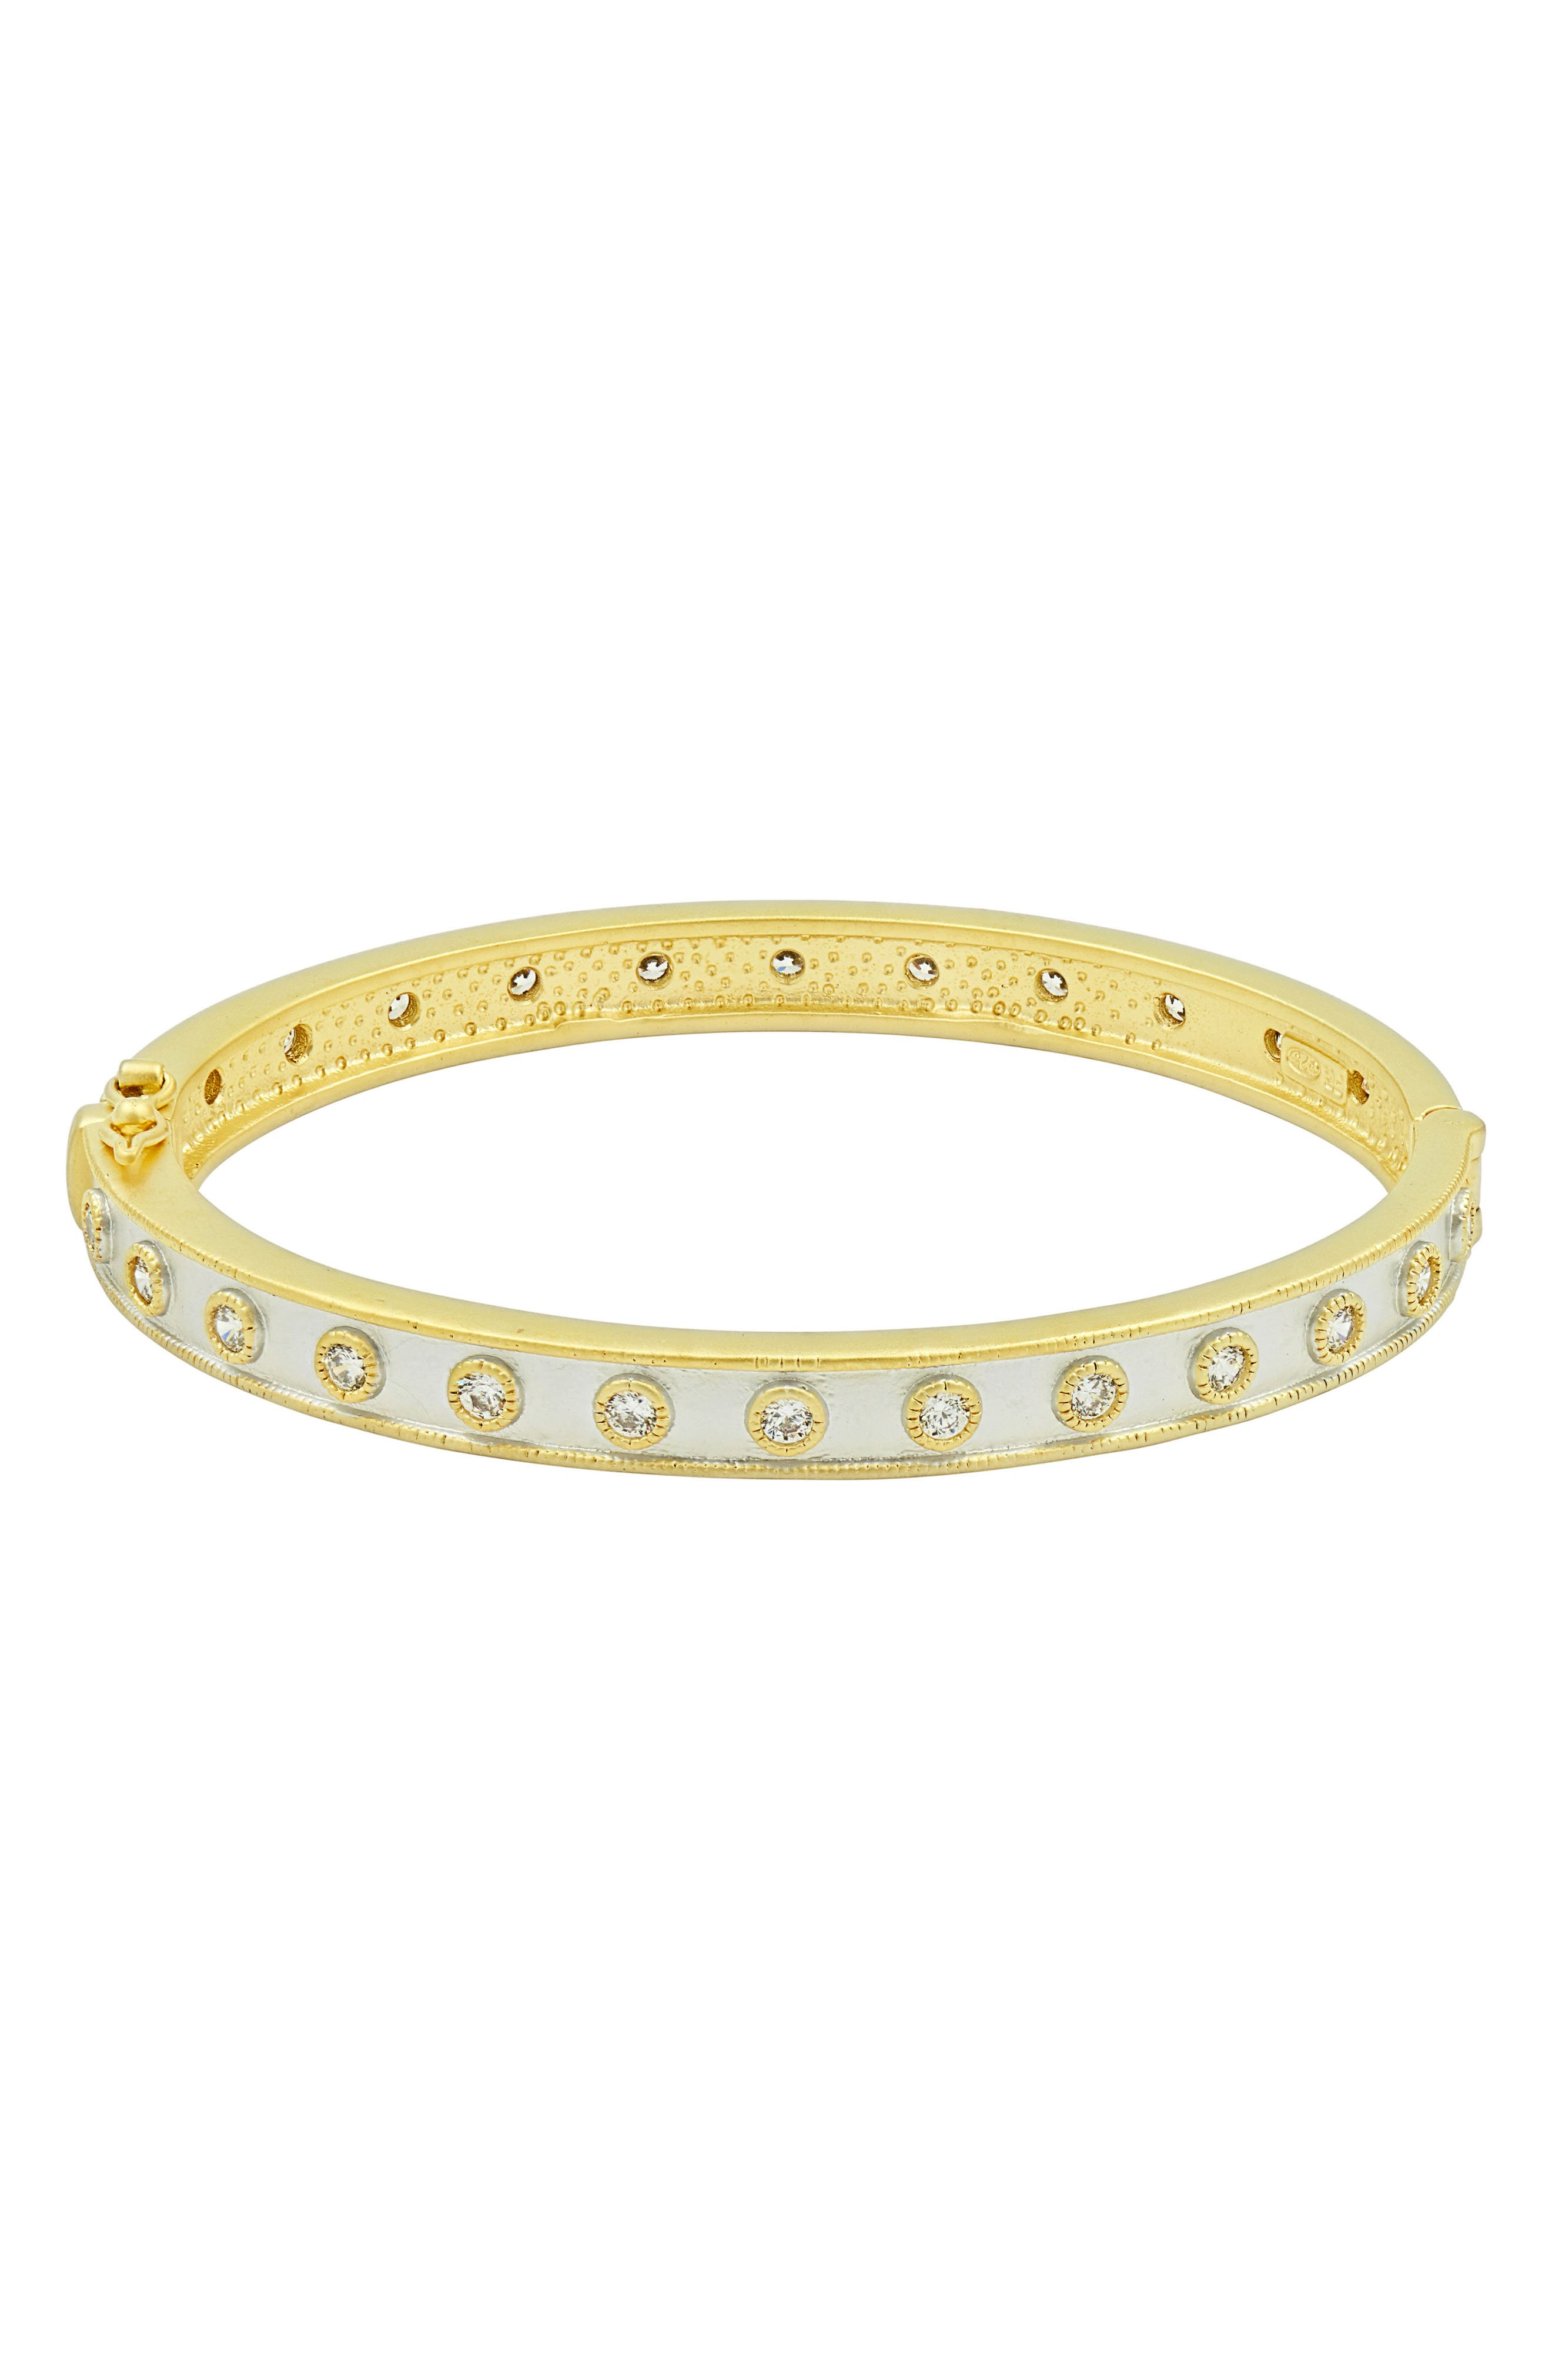 Visionary Eternity Bangle,                         Main,                         color, Gold/ Silver